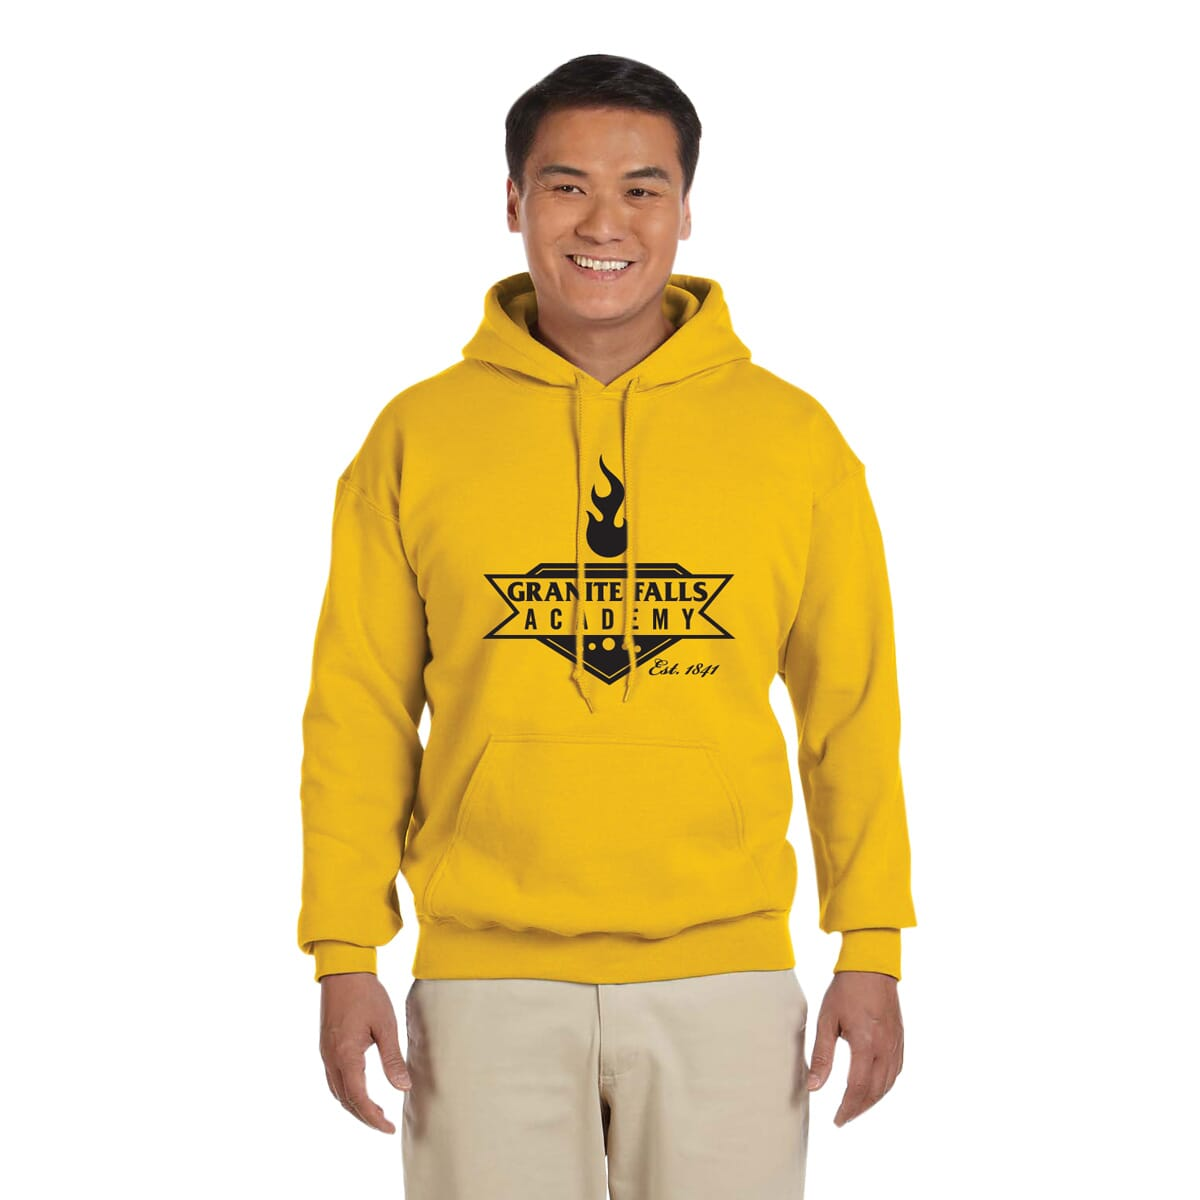 Athletic gold hoodie sweatshirt with school logo